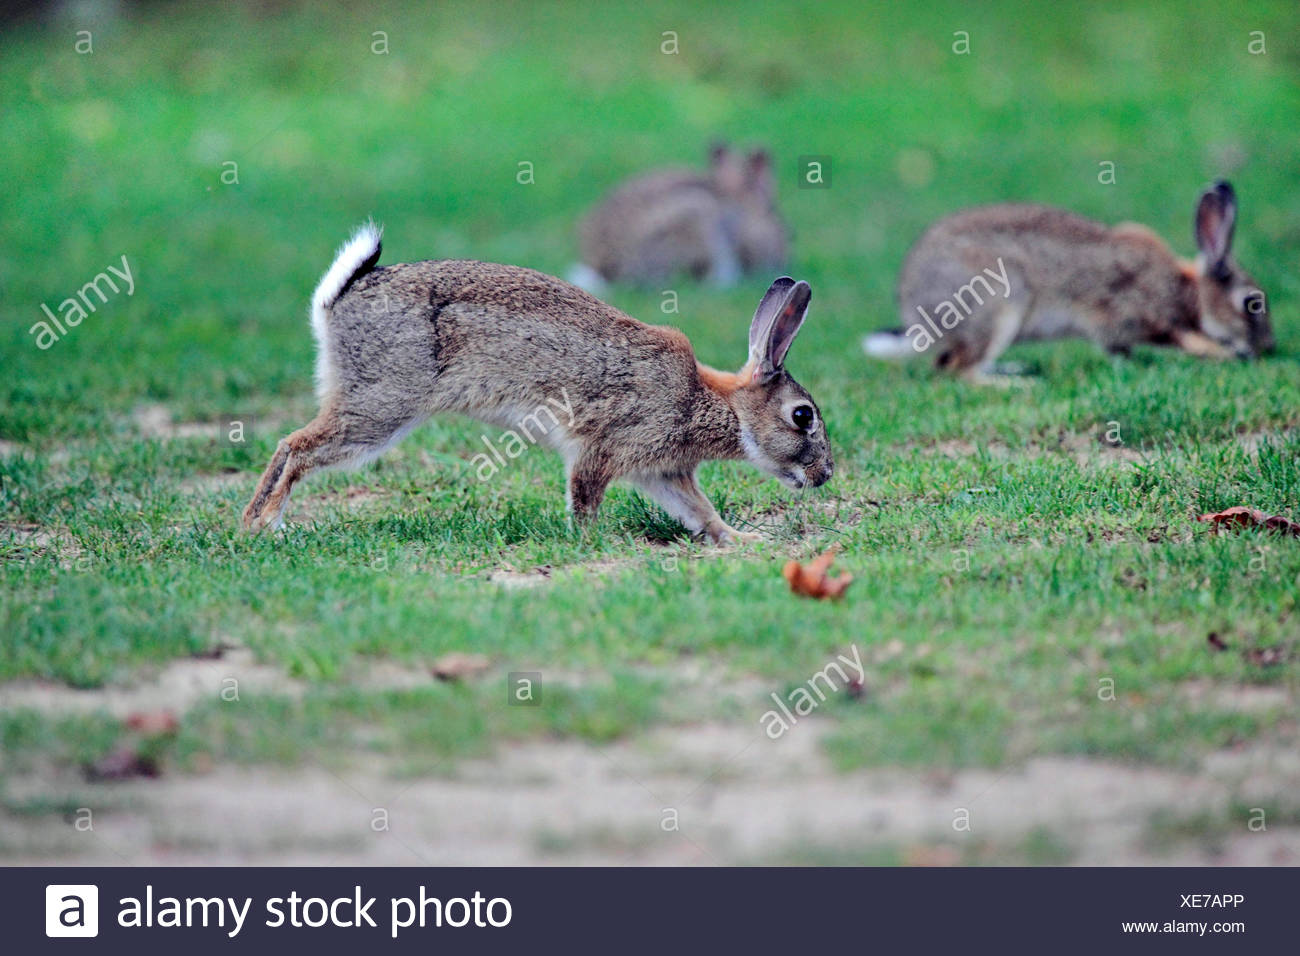 European rabbit (Oryctolagus cuniculus), wild rabbits searching food in a meadow, Germany - Stock Image